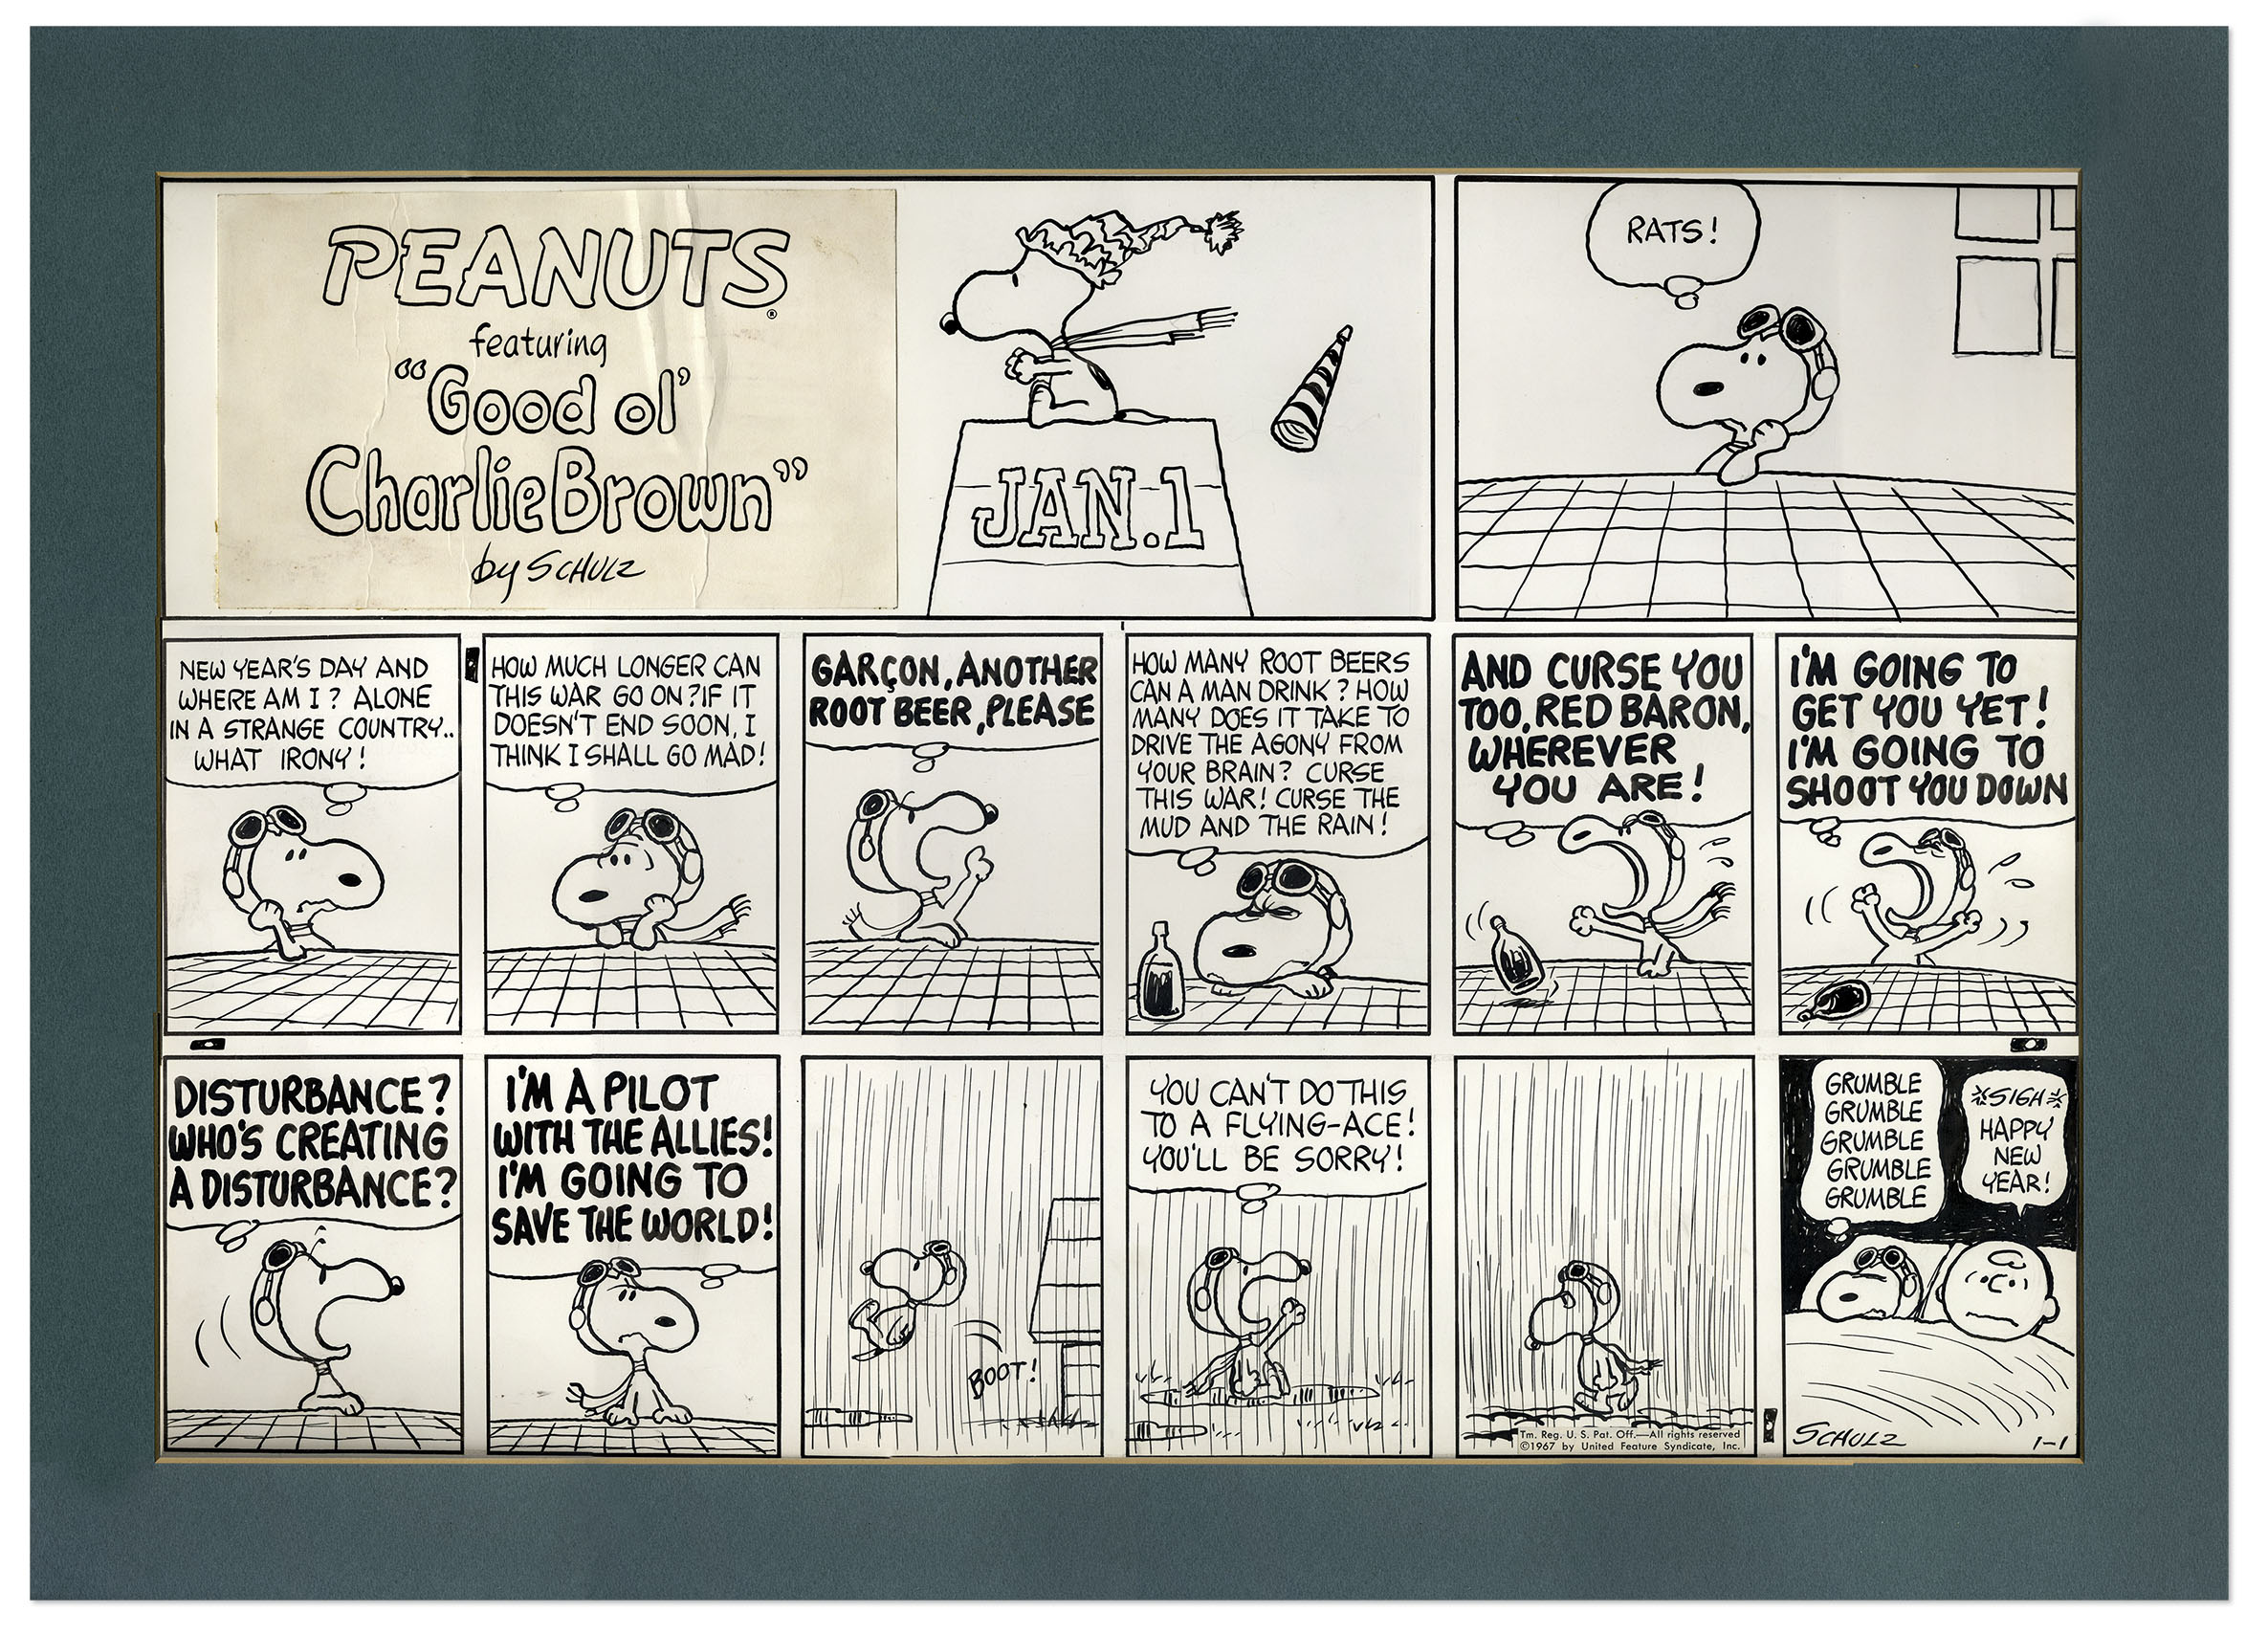 """This """"Red Baron'"""" Peanuts comic strip, hand-drawn by Charles Schulz, appeared on Sunday, Jan. 1, 1967 and featuring Snoopy and Charlie Brown. The 15-panel """"Peanuts"""" strip is currently up for auction at Nate D. Sanders Fine Autographs & Memorabilia and carries an $80,000 minimum bid."""